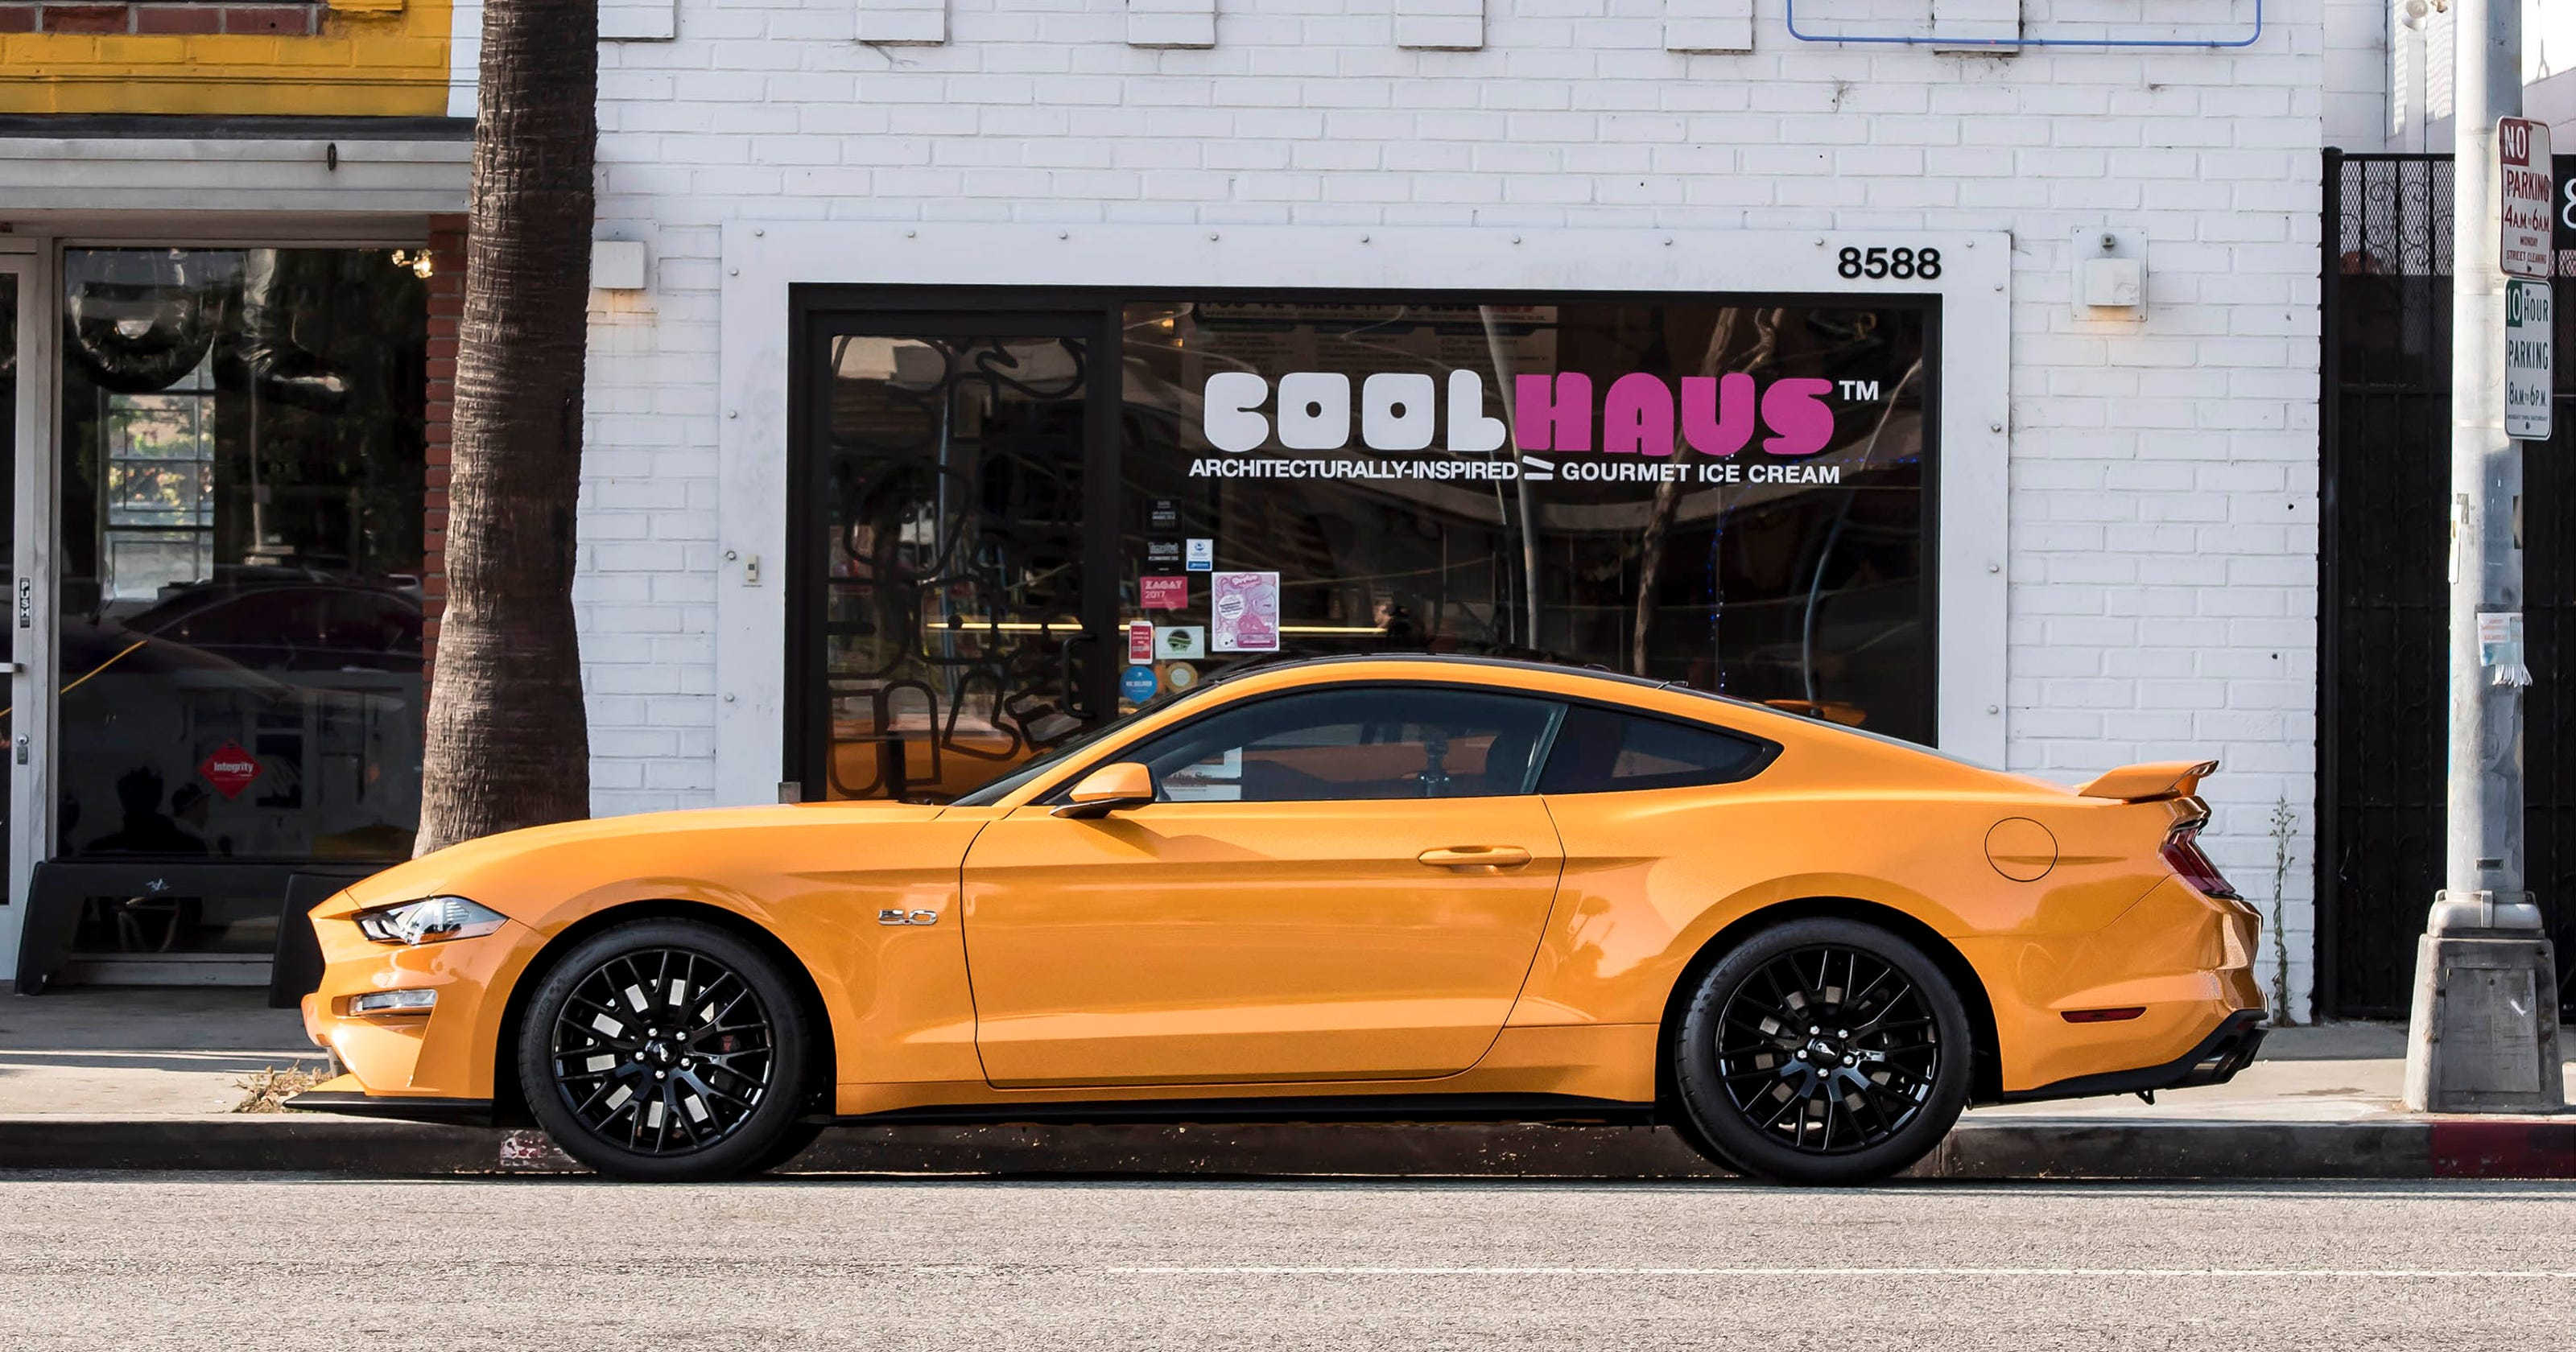 Ford mustang coolhaus new orange fury ice cream sandwiches